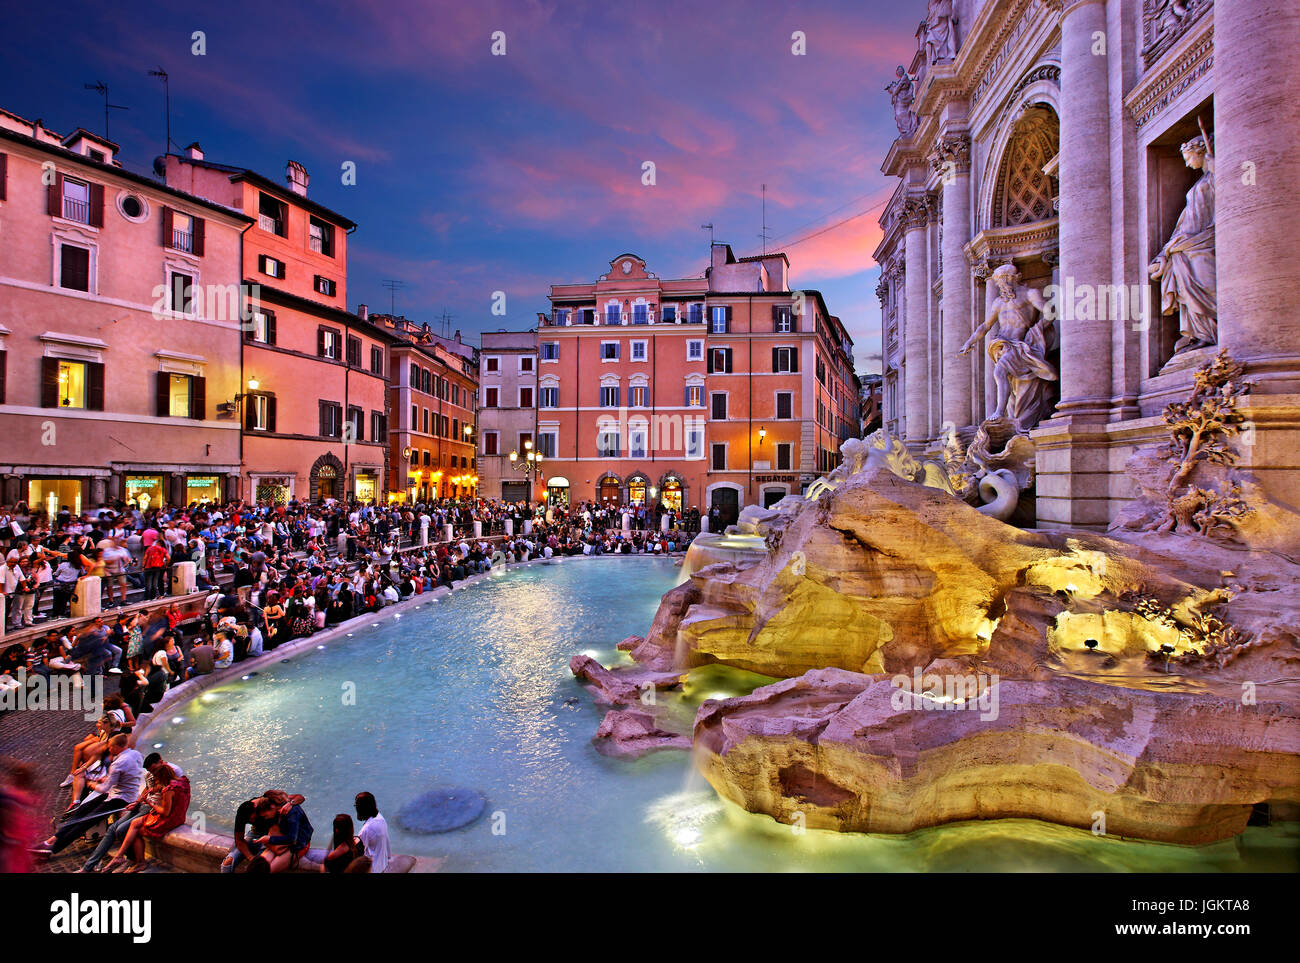 Night falling at Fontana di Trevi, Rome, Italy - Stock Image